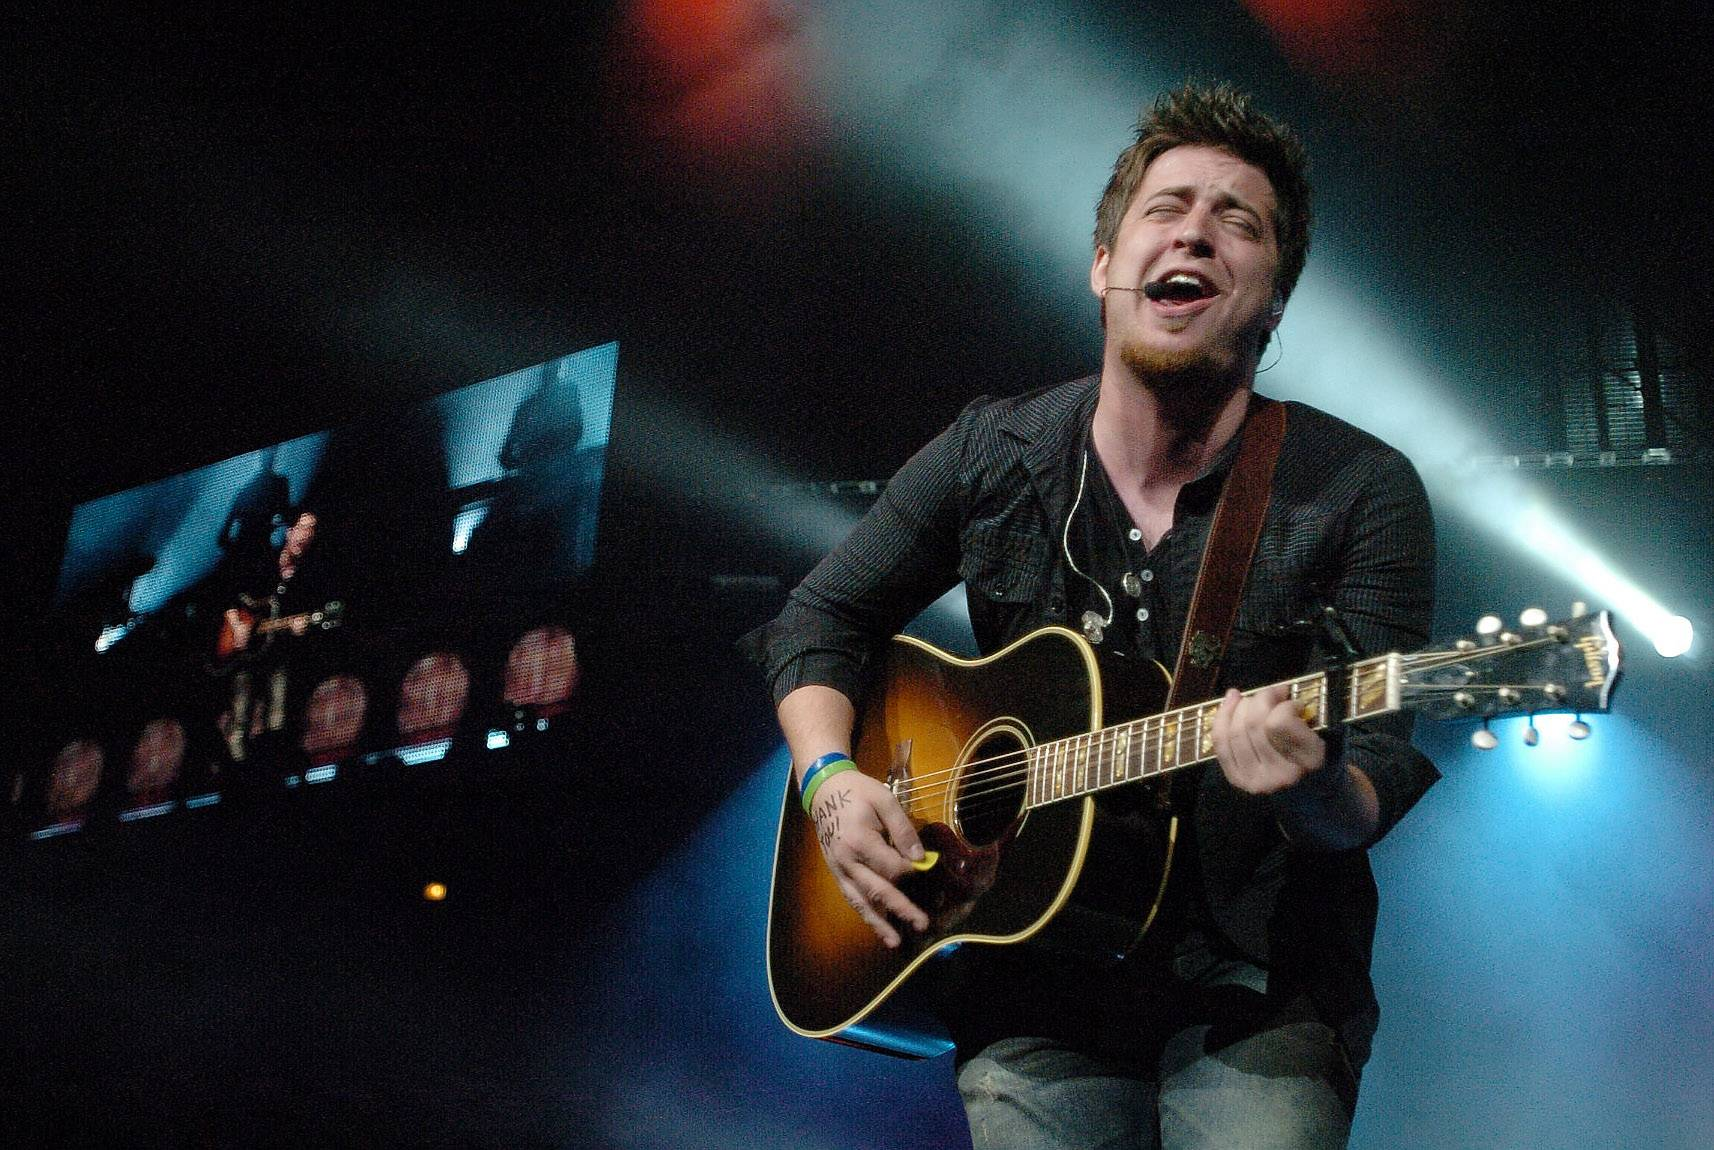 Lee DeWyze performs at SPACE in Evanston on Sunday, Nov. 29.